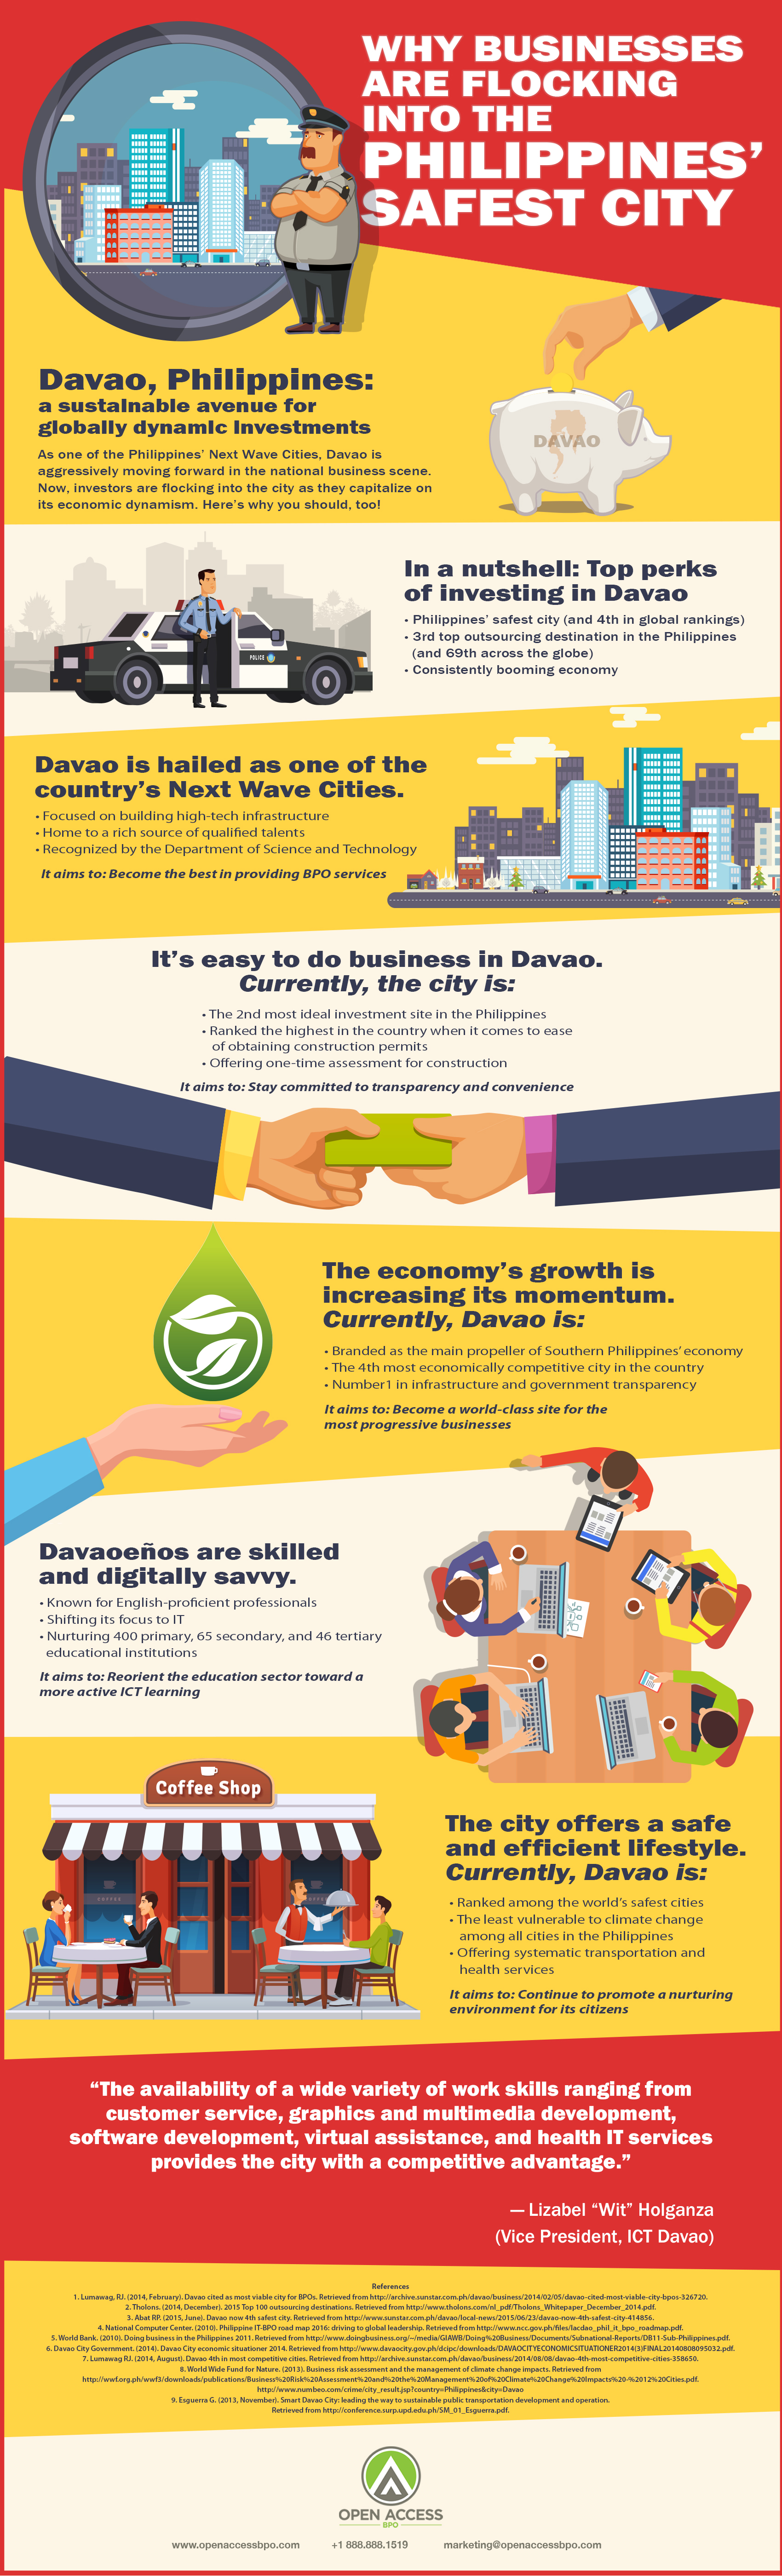 Meet the next Philippine outsourcing giant: Davao City- Infographic